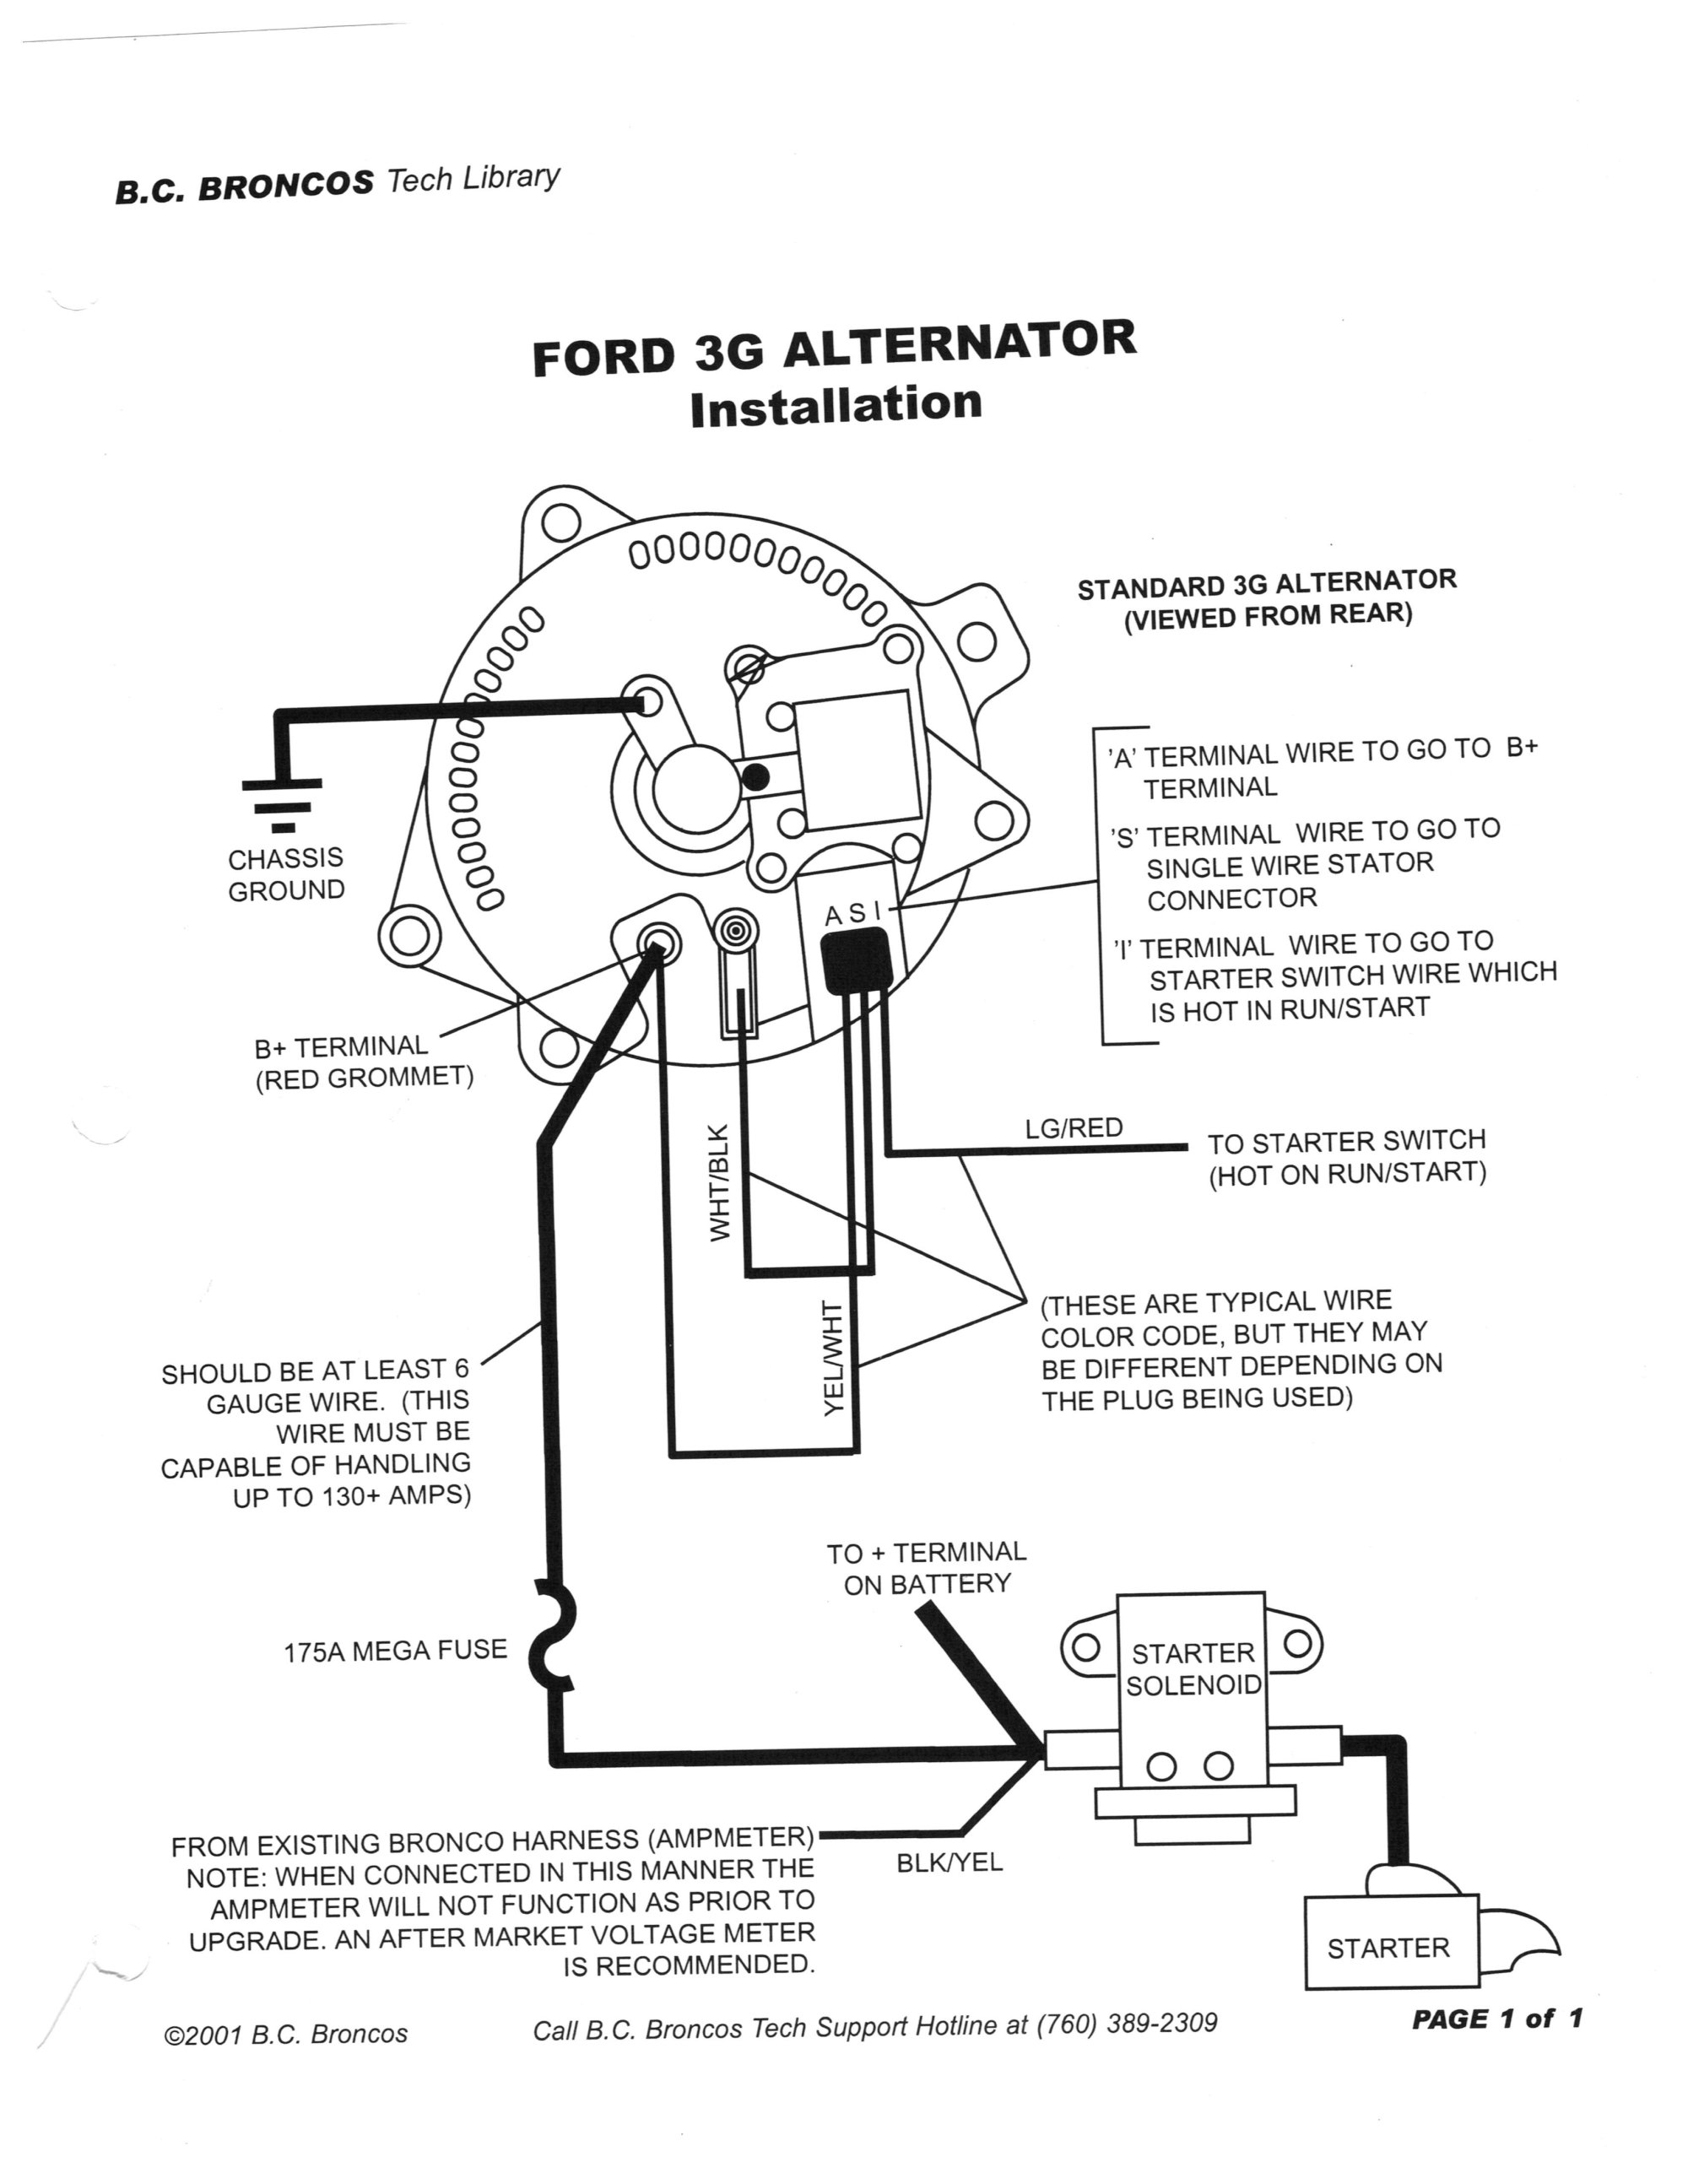 hight resolution of 1981 ford alt wiring wiring diagrams schema 1979 ford wiring diagram 1977 ford alternator wiring diagram